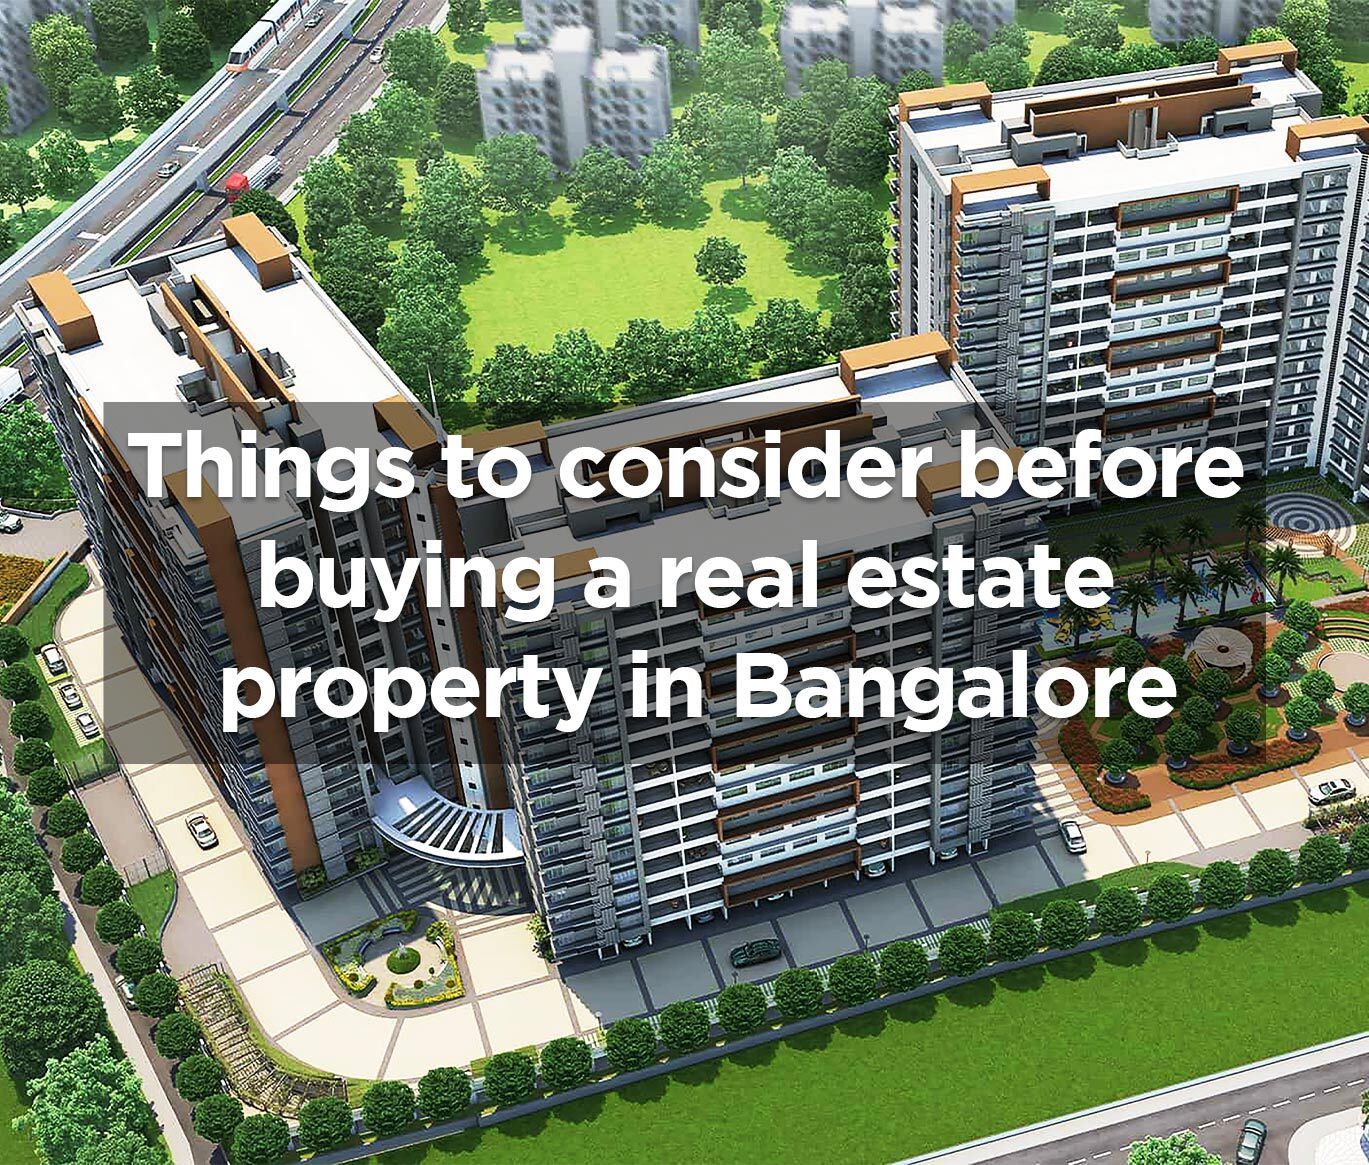 Important Things to consider before buying a Real Estate Property in Bangalore